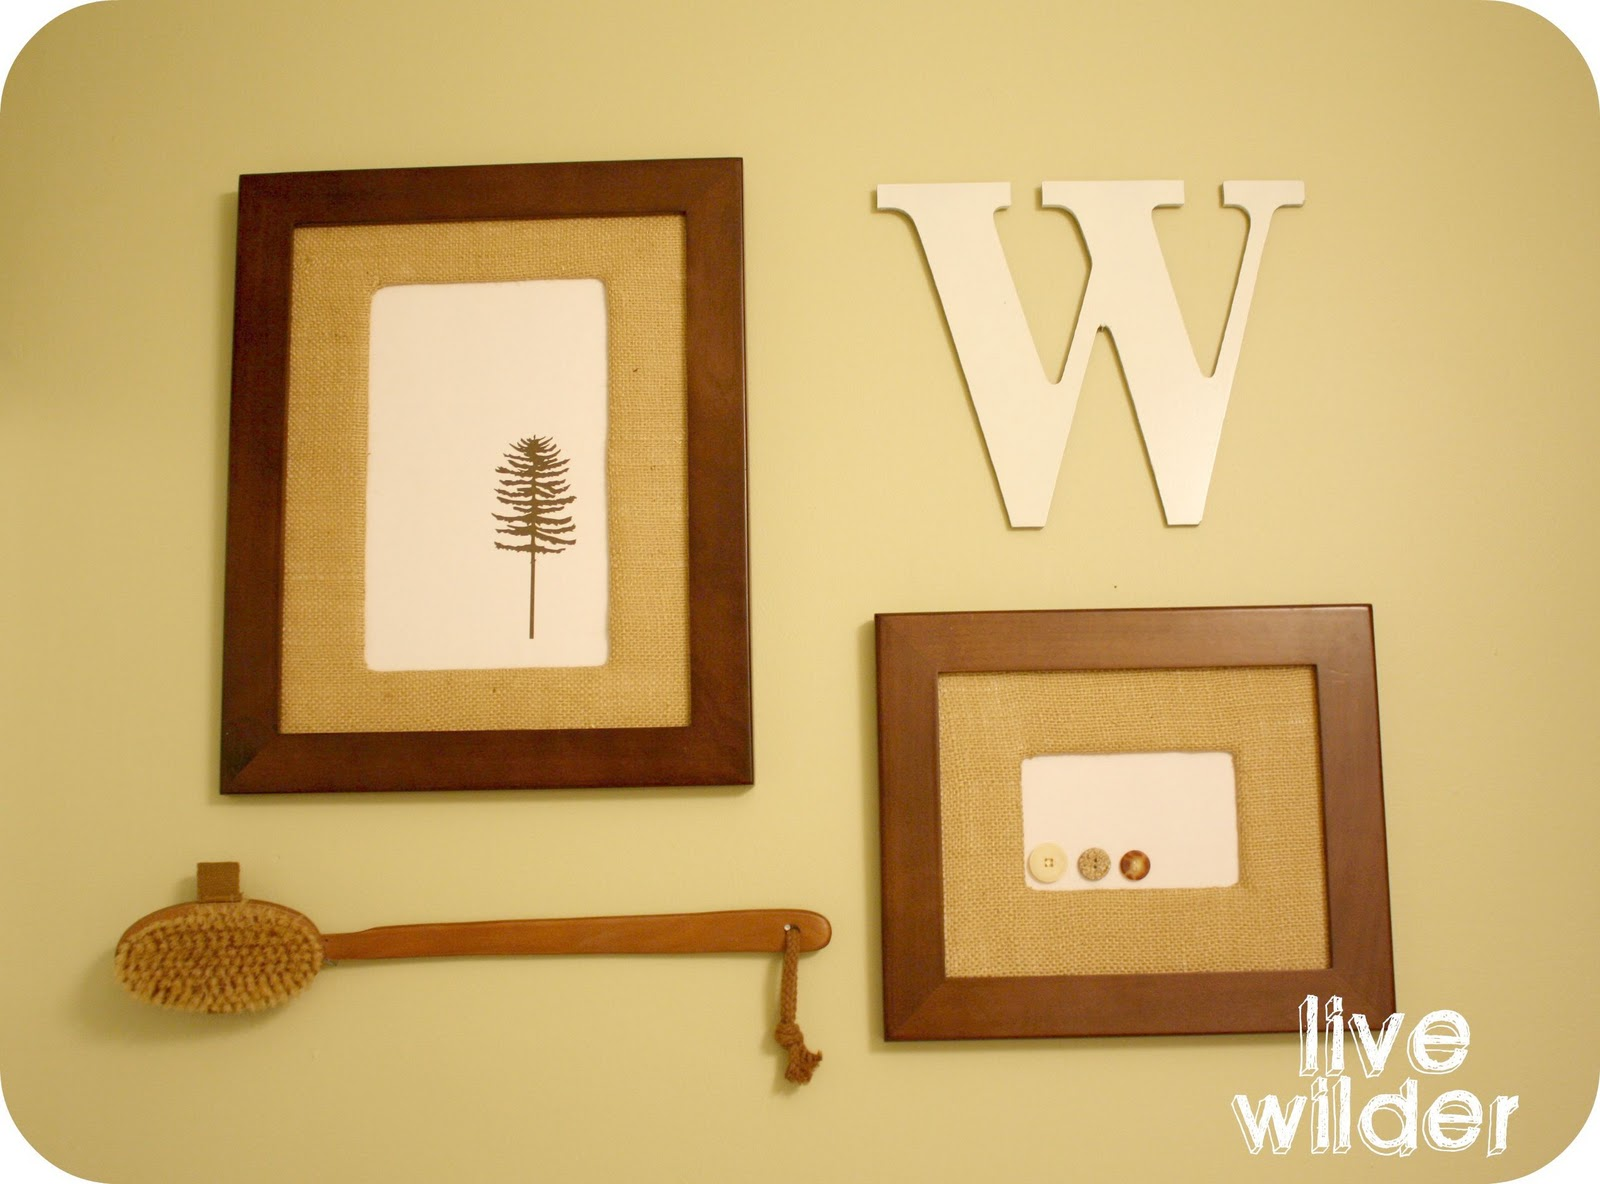 live a little wilder: burlap frame {tutorial}